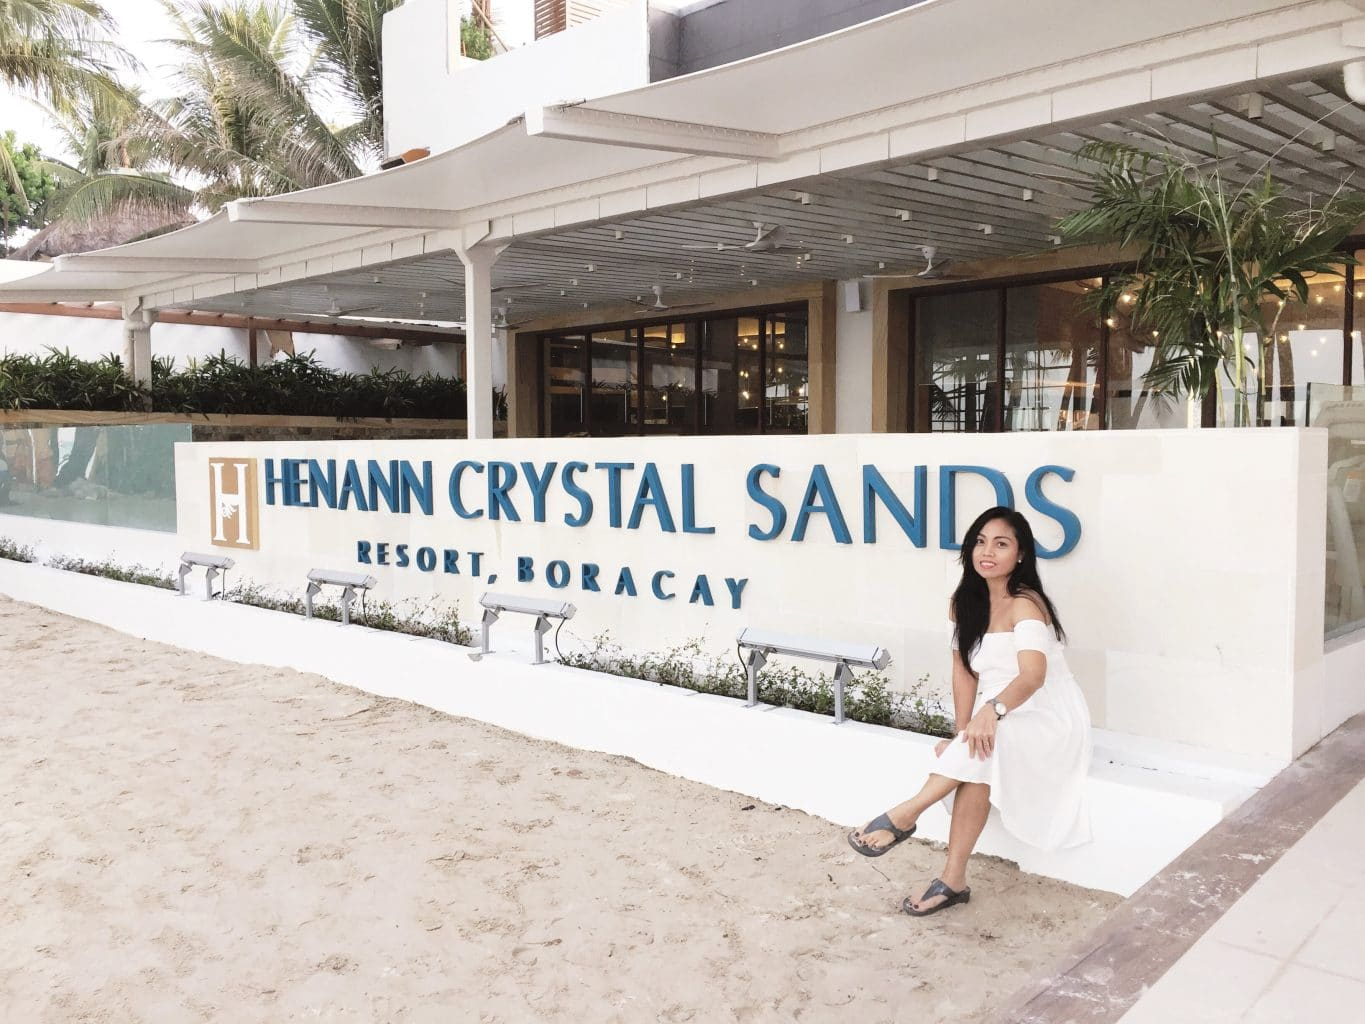 The Henann Crystal Sands Resort